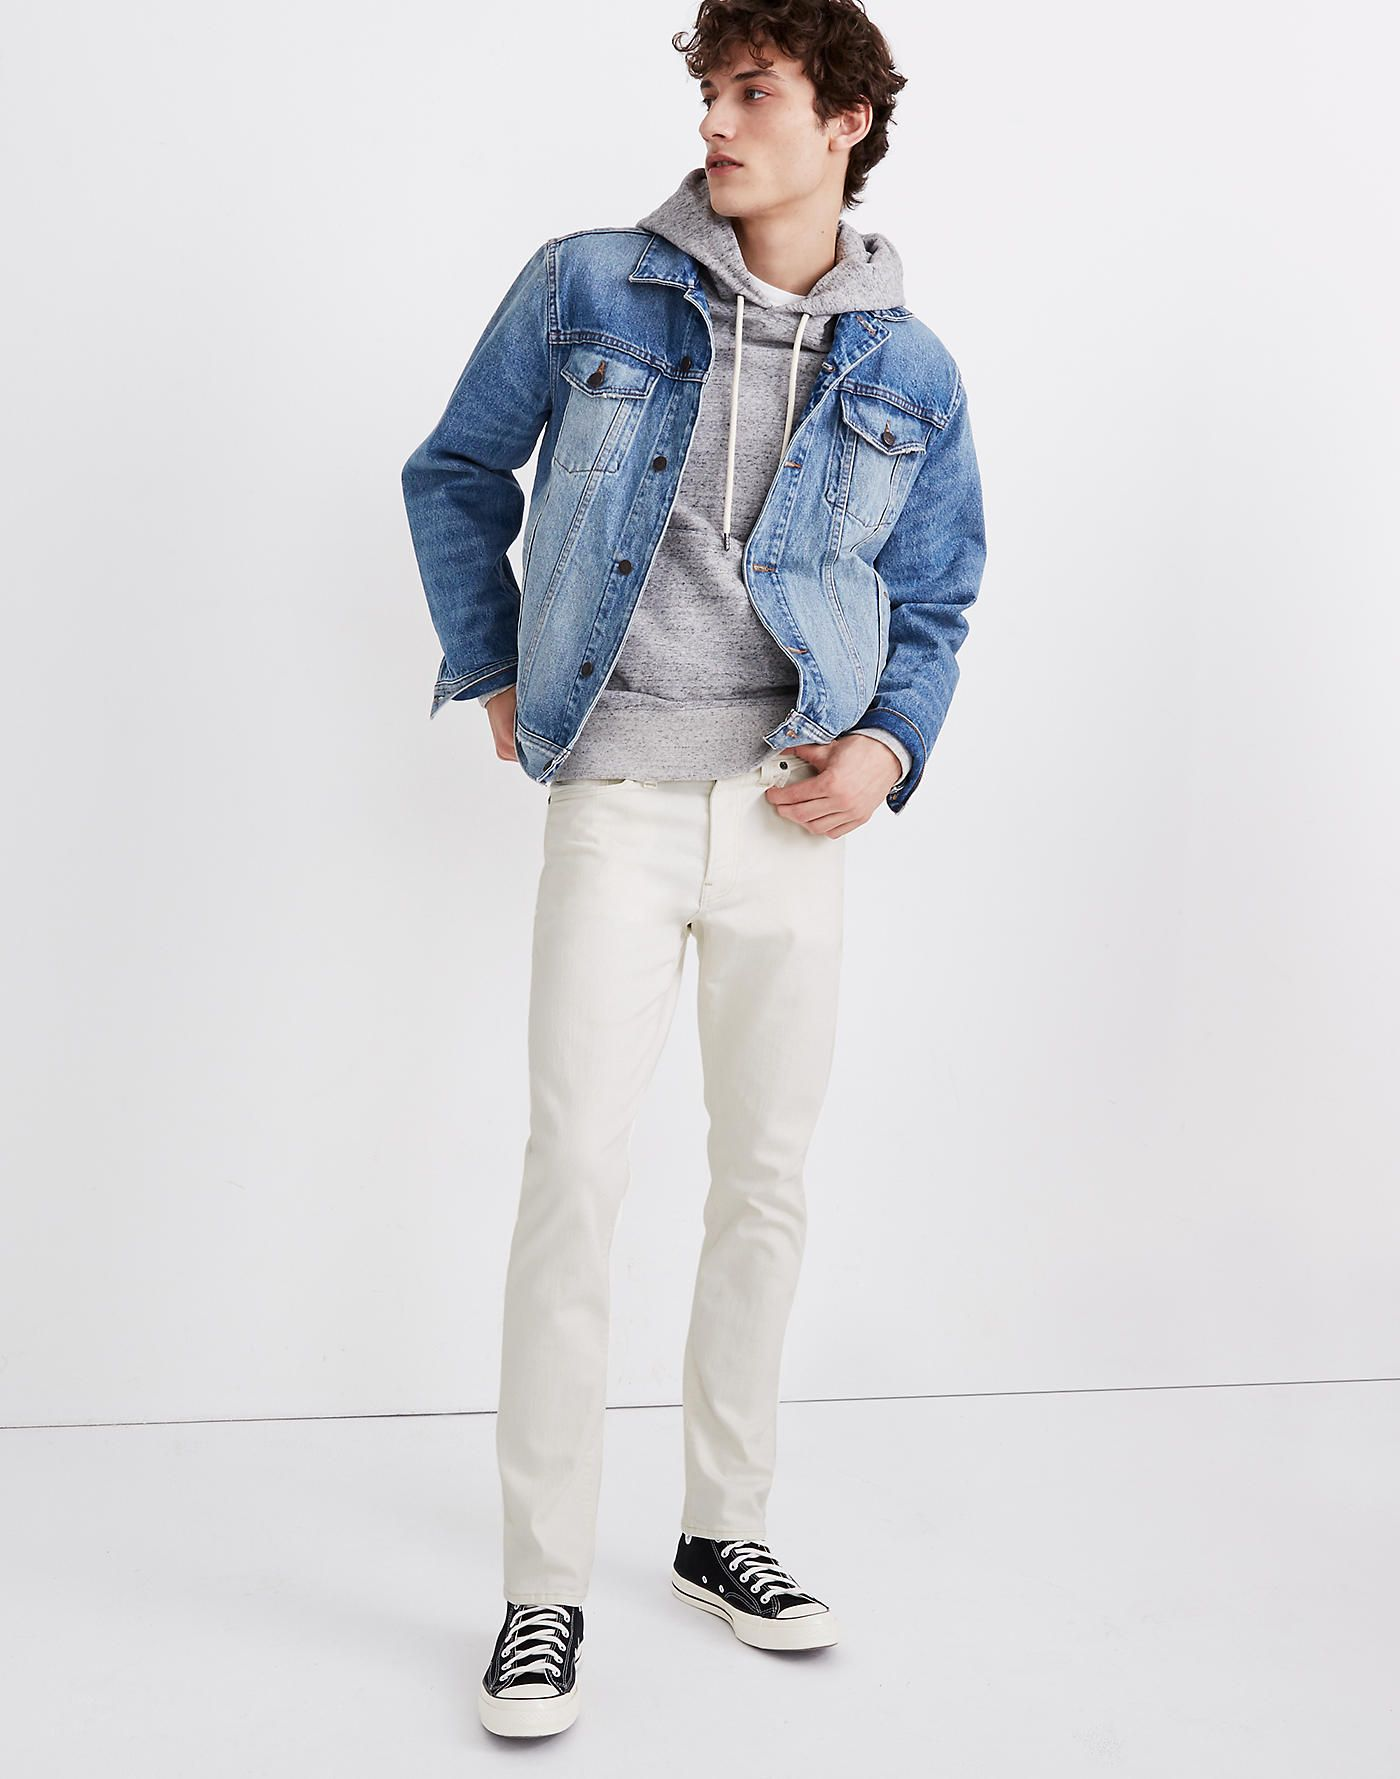 Slim Authentic Flex Jeans In Lighthouse Wash In 2021 Streetwear Men Outfits Blue Outfit Men Jean Jacket Outfits Men [ 1779 x 1400 Pixel ]